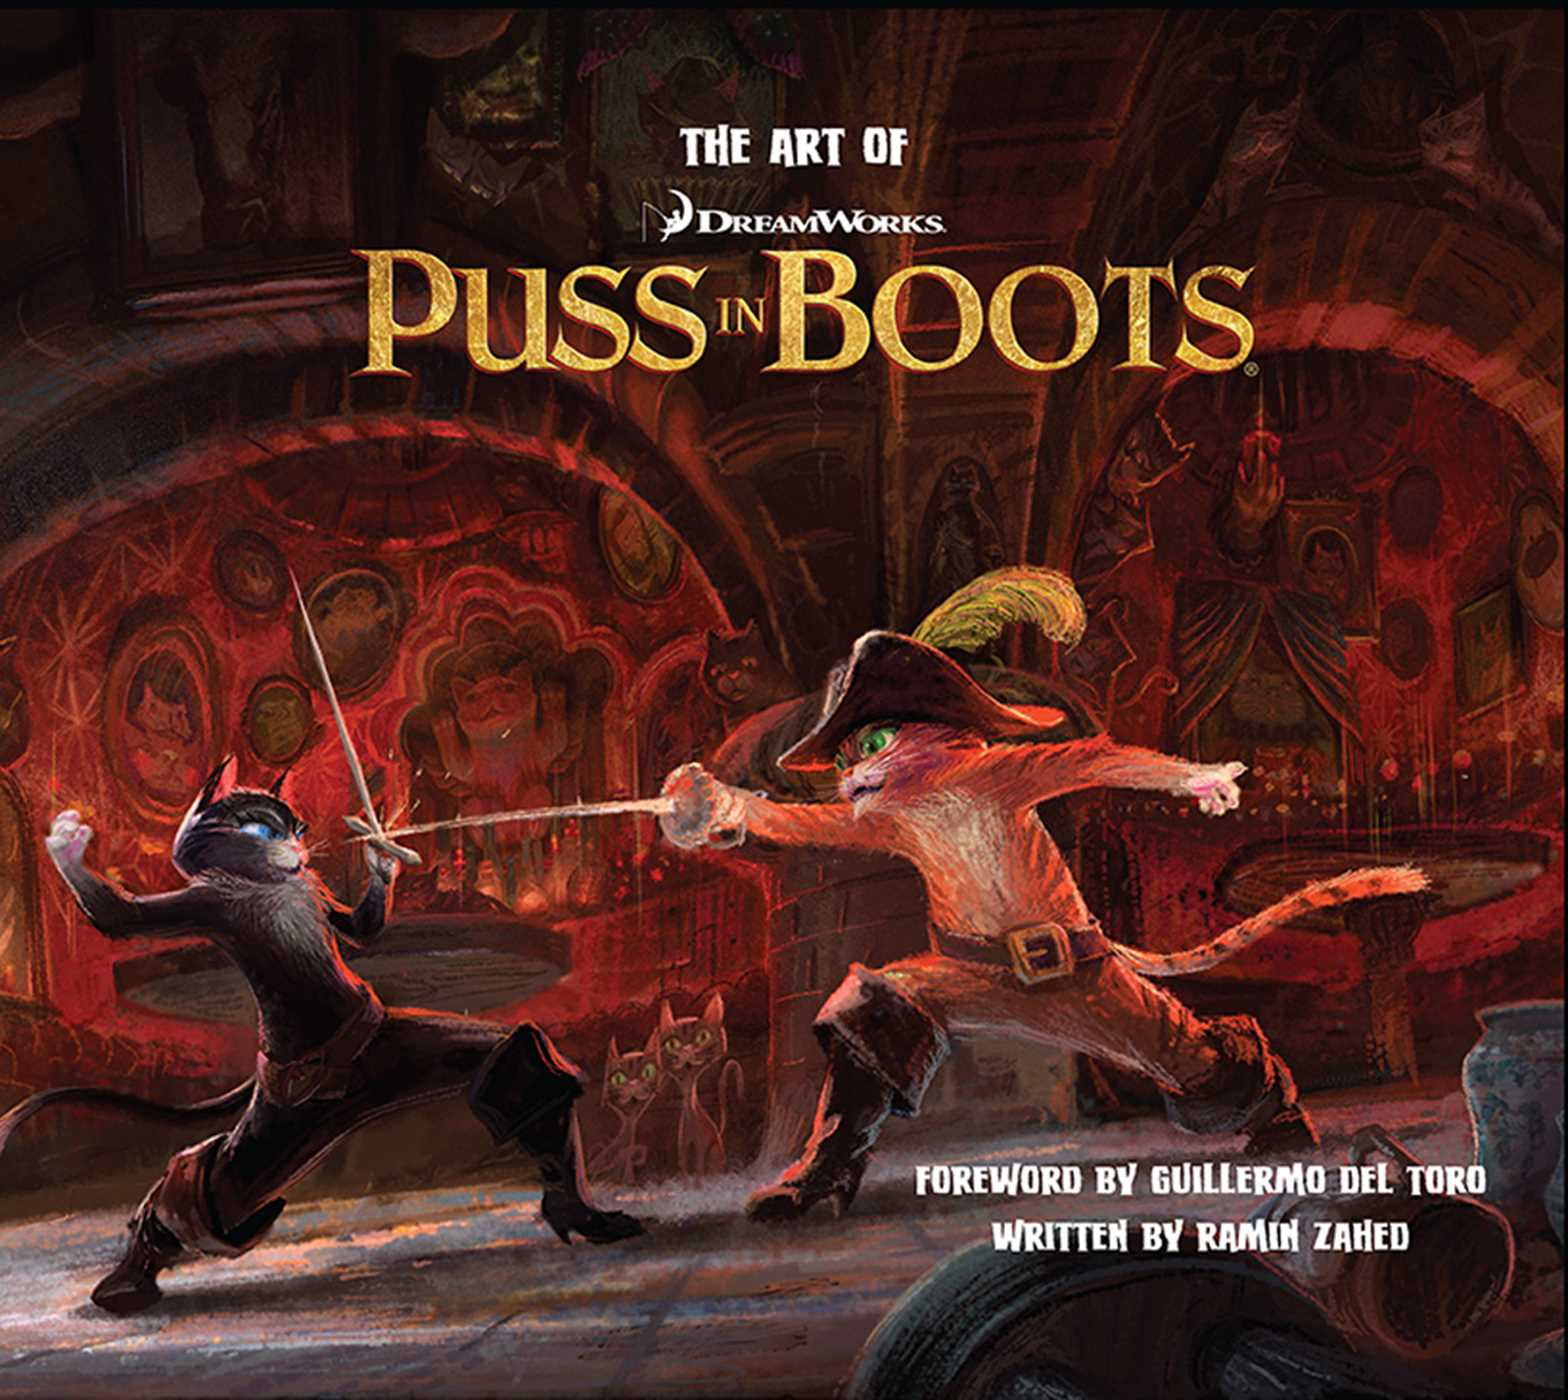 the art of puss in boots | bookramin zahed | official publisher